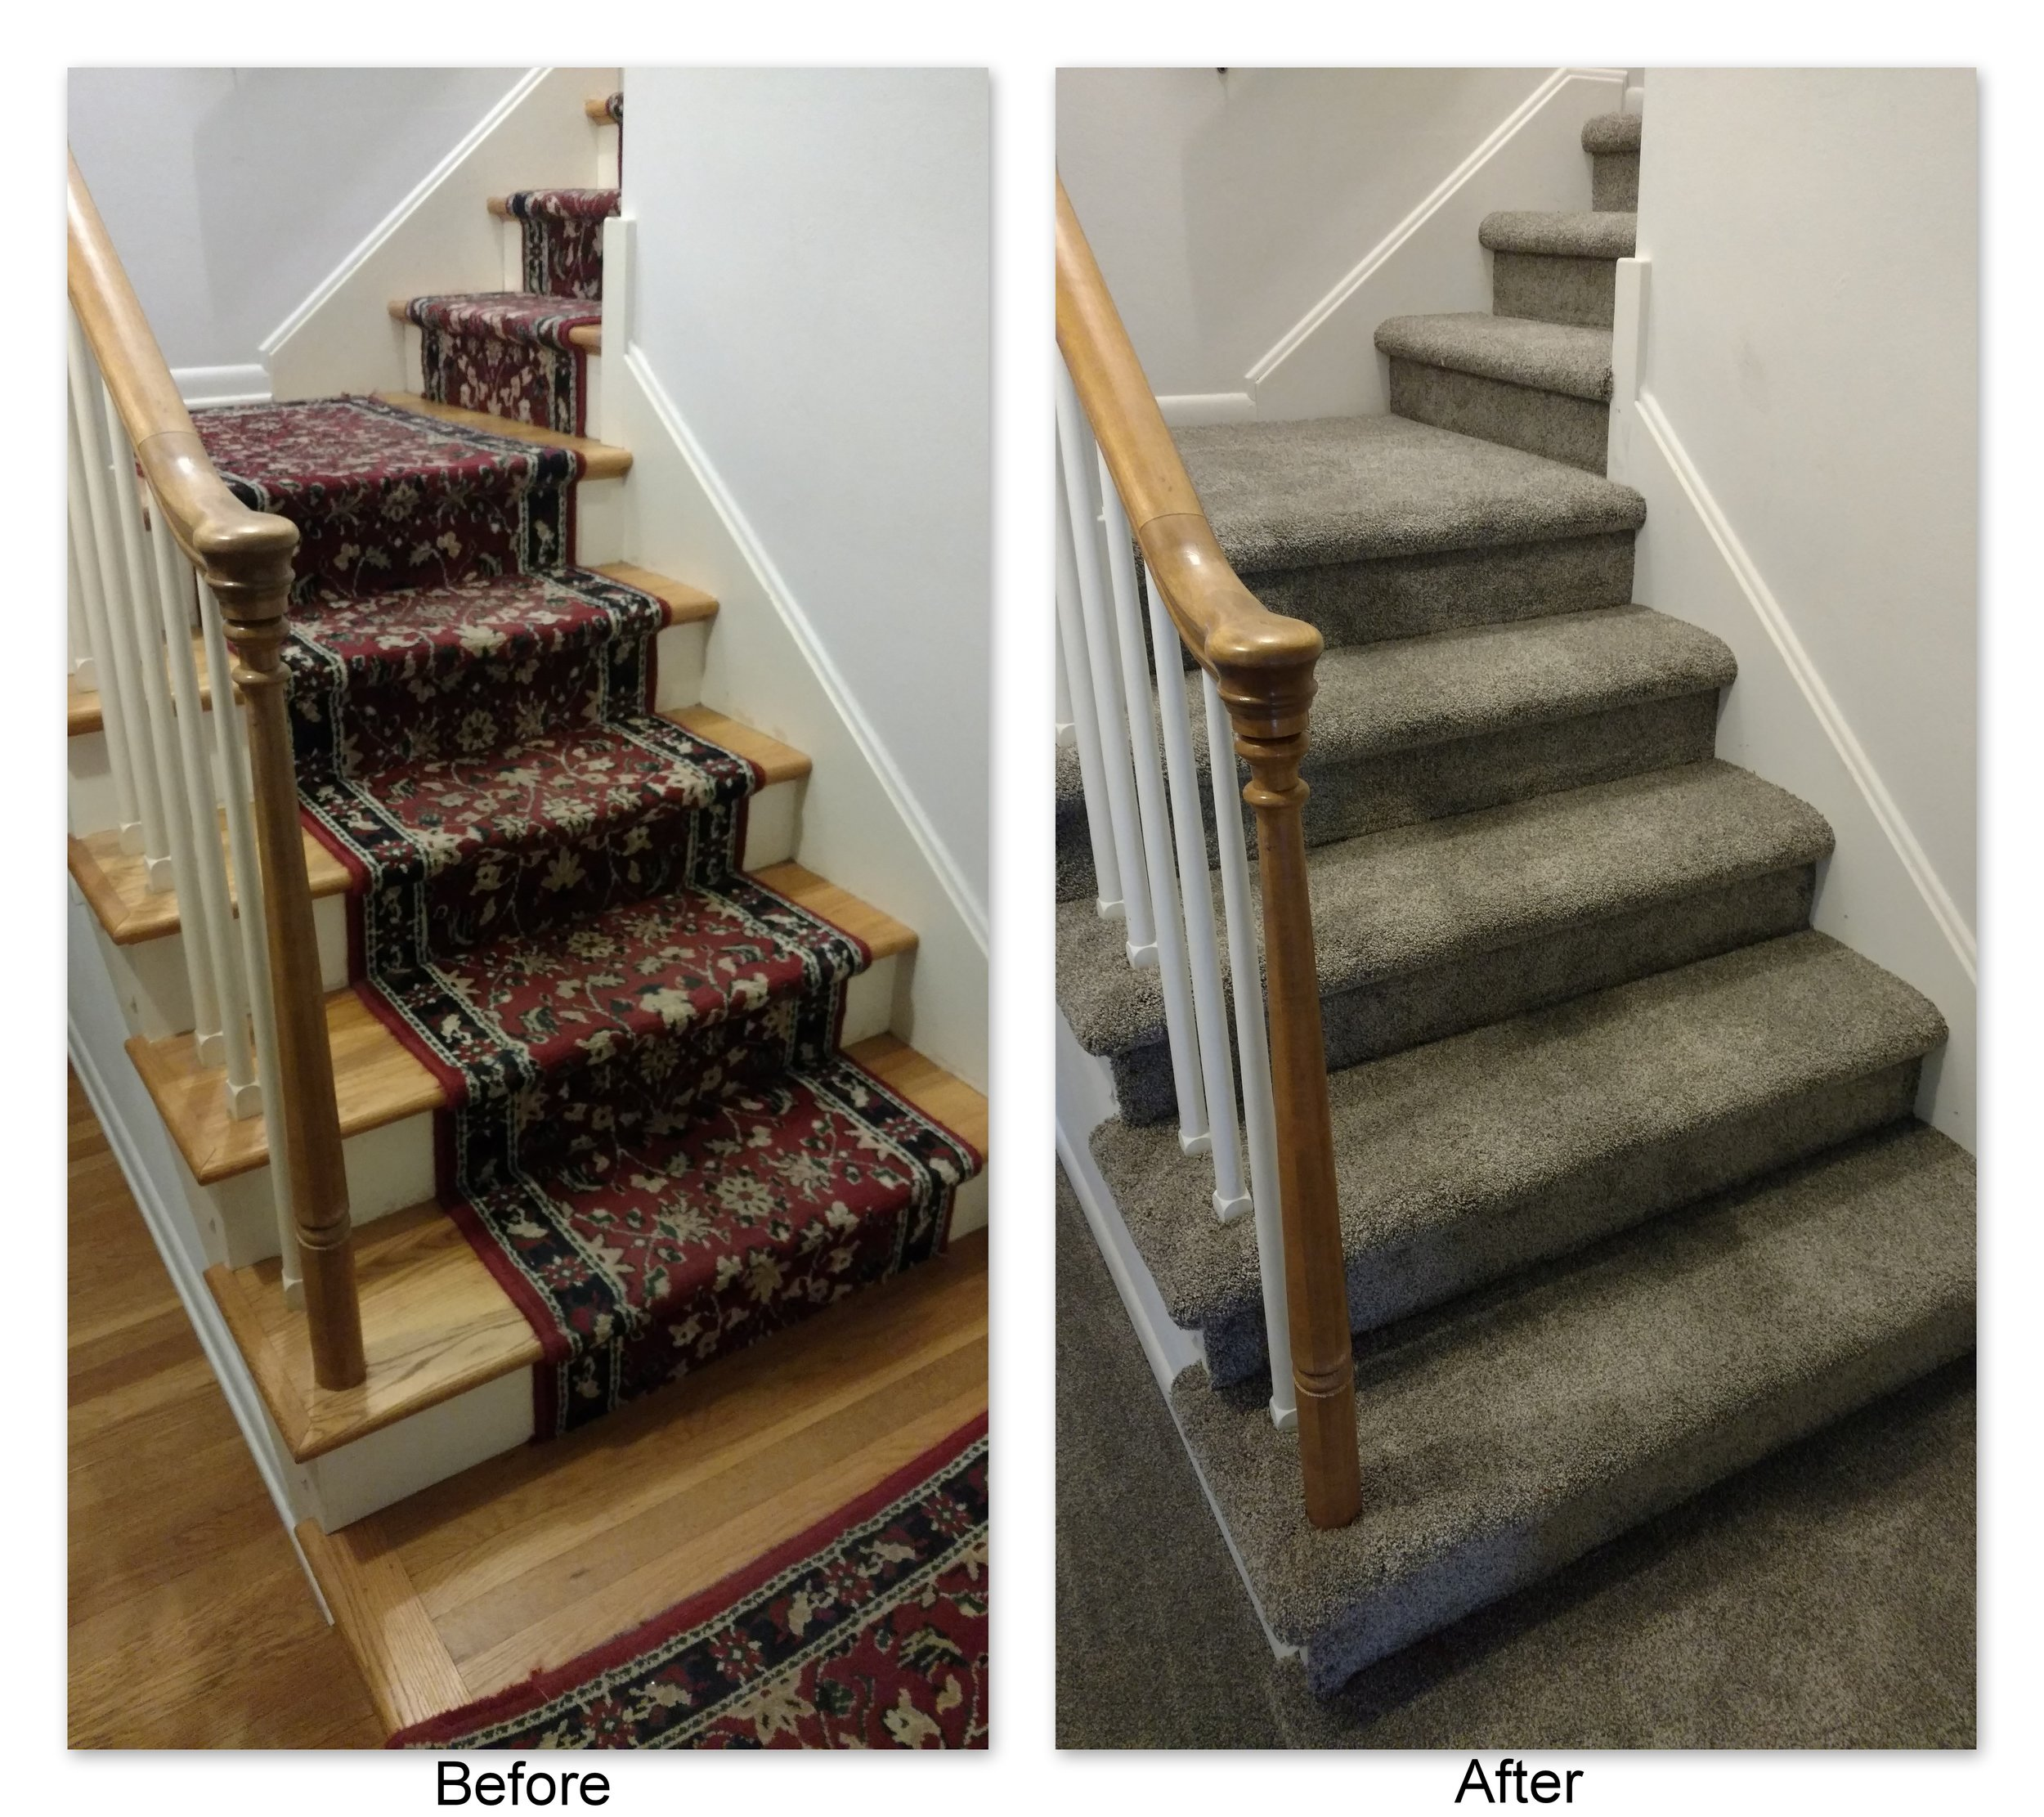 From worn old stair runner to classy grey modern multiflec, Frank & Tonya's stair carpet choice of Tigressa SoftStyle Sakti Carpet in the color Sundial drastically updated their entry stairs to a contemporary style.